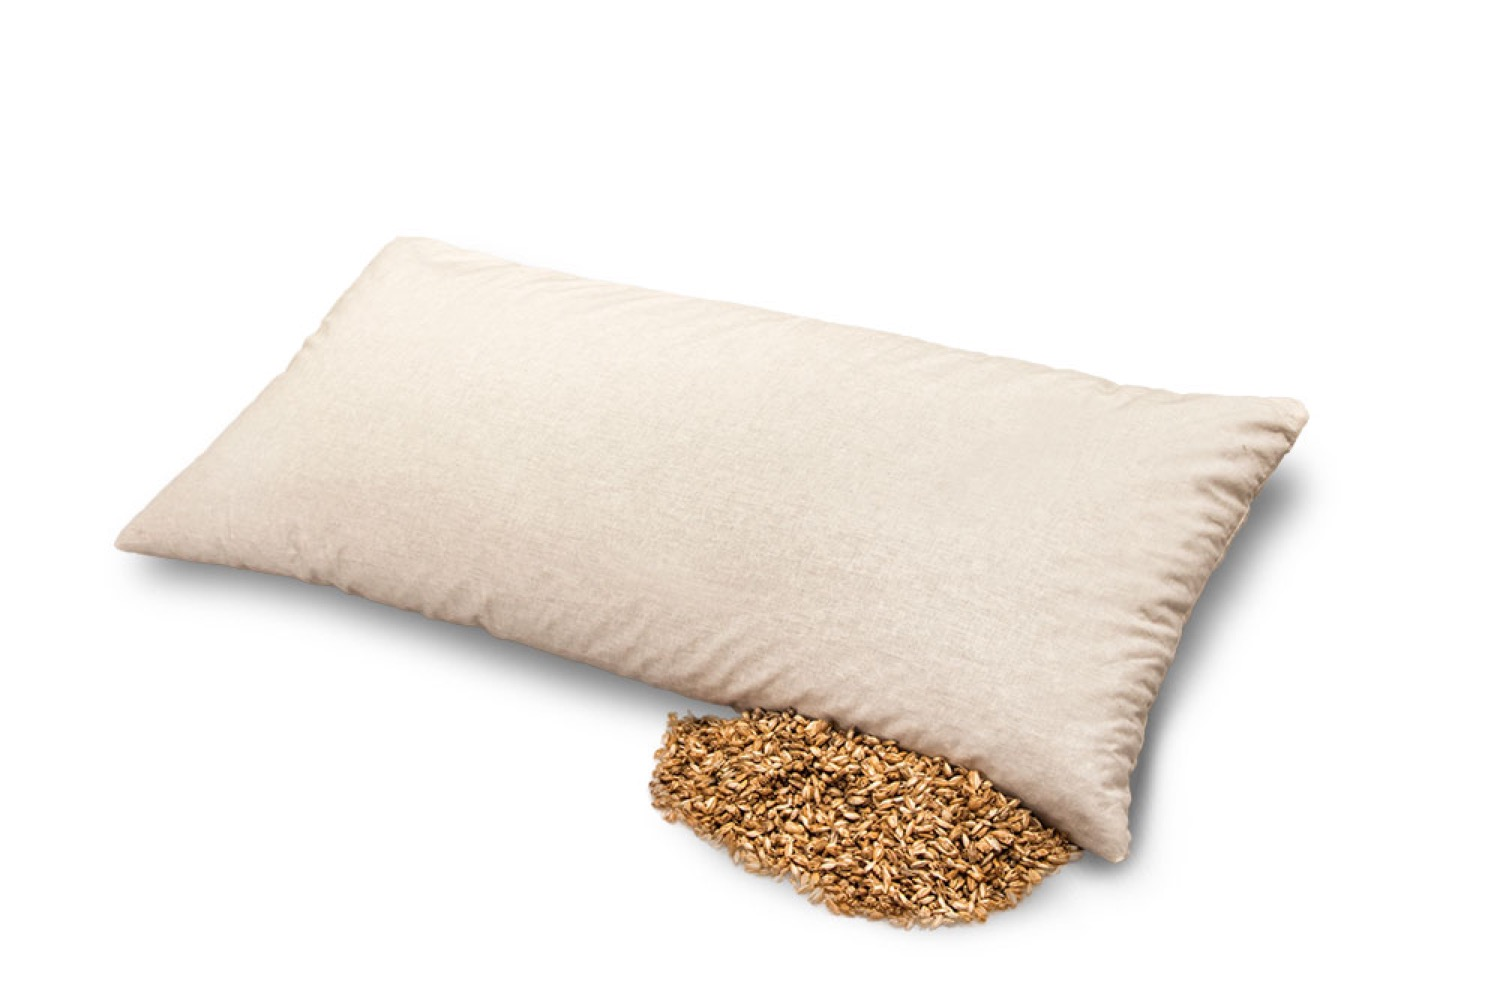 Pillow filled with Spelt